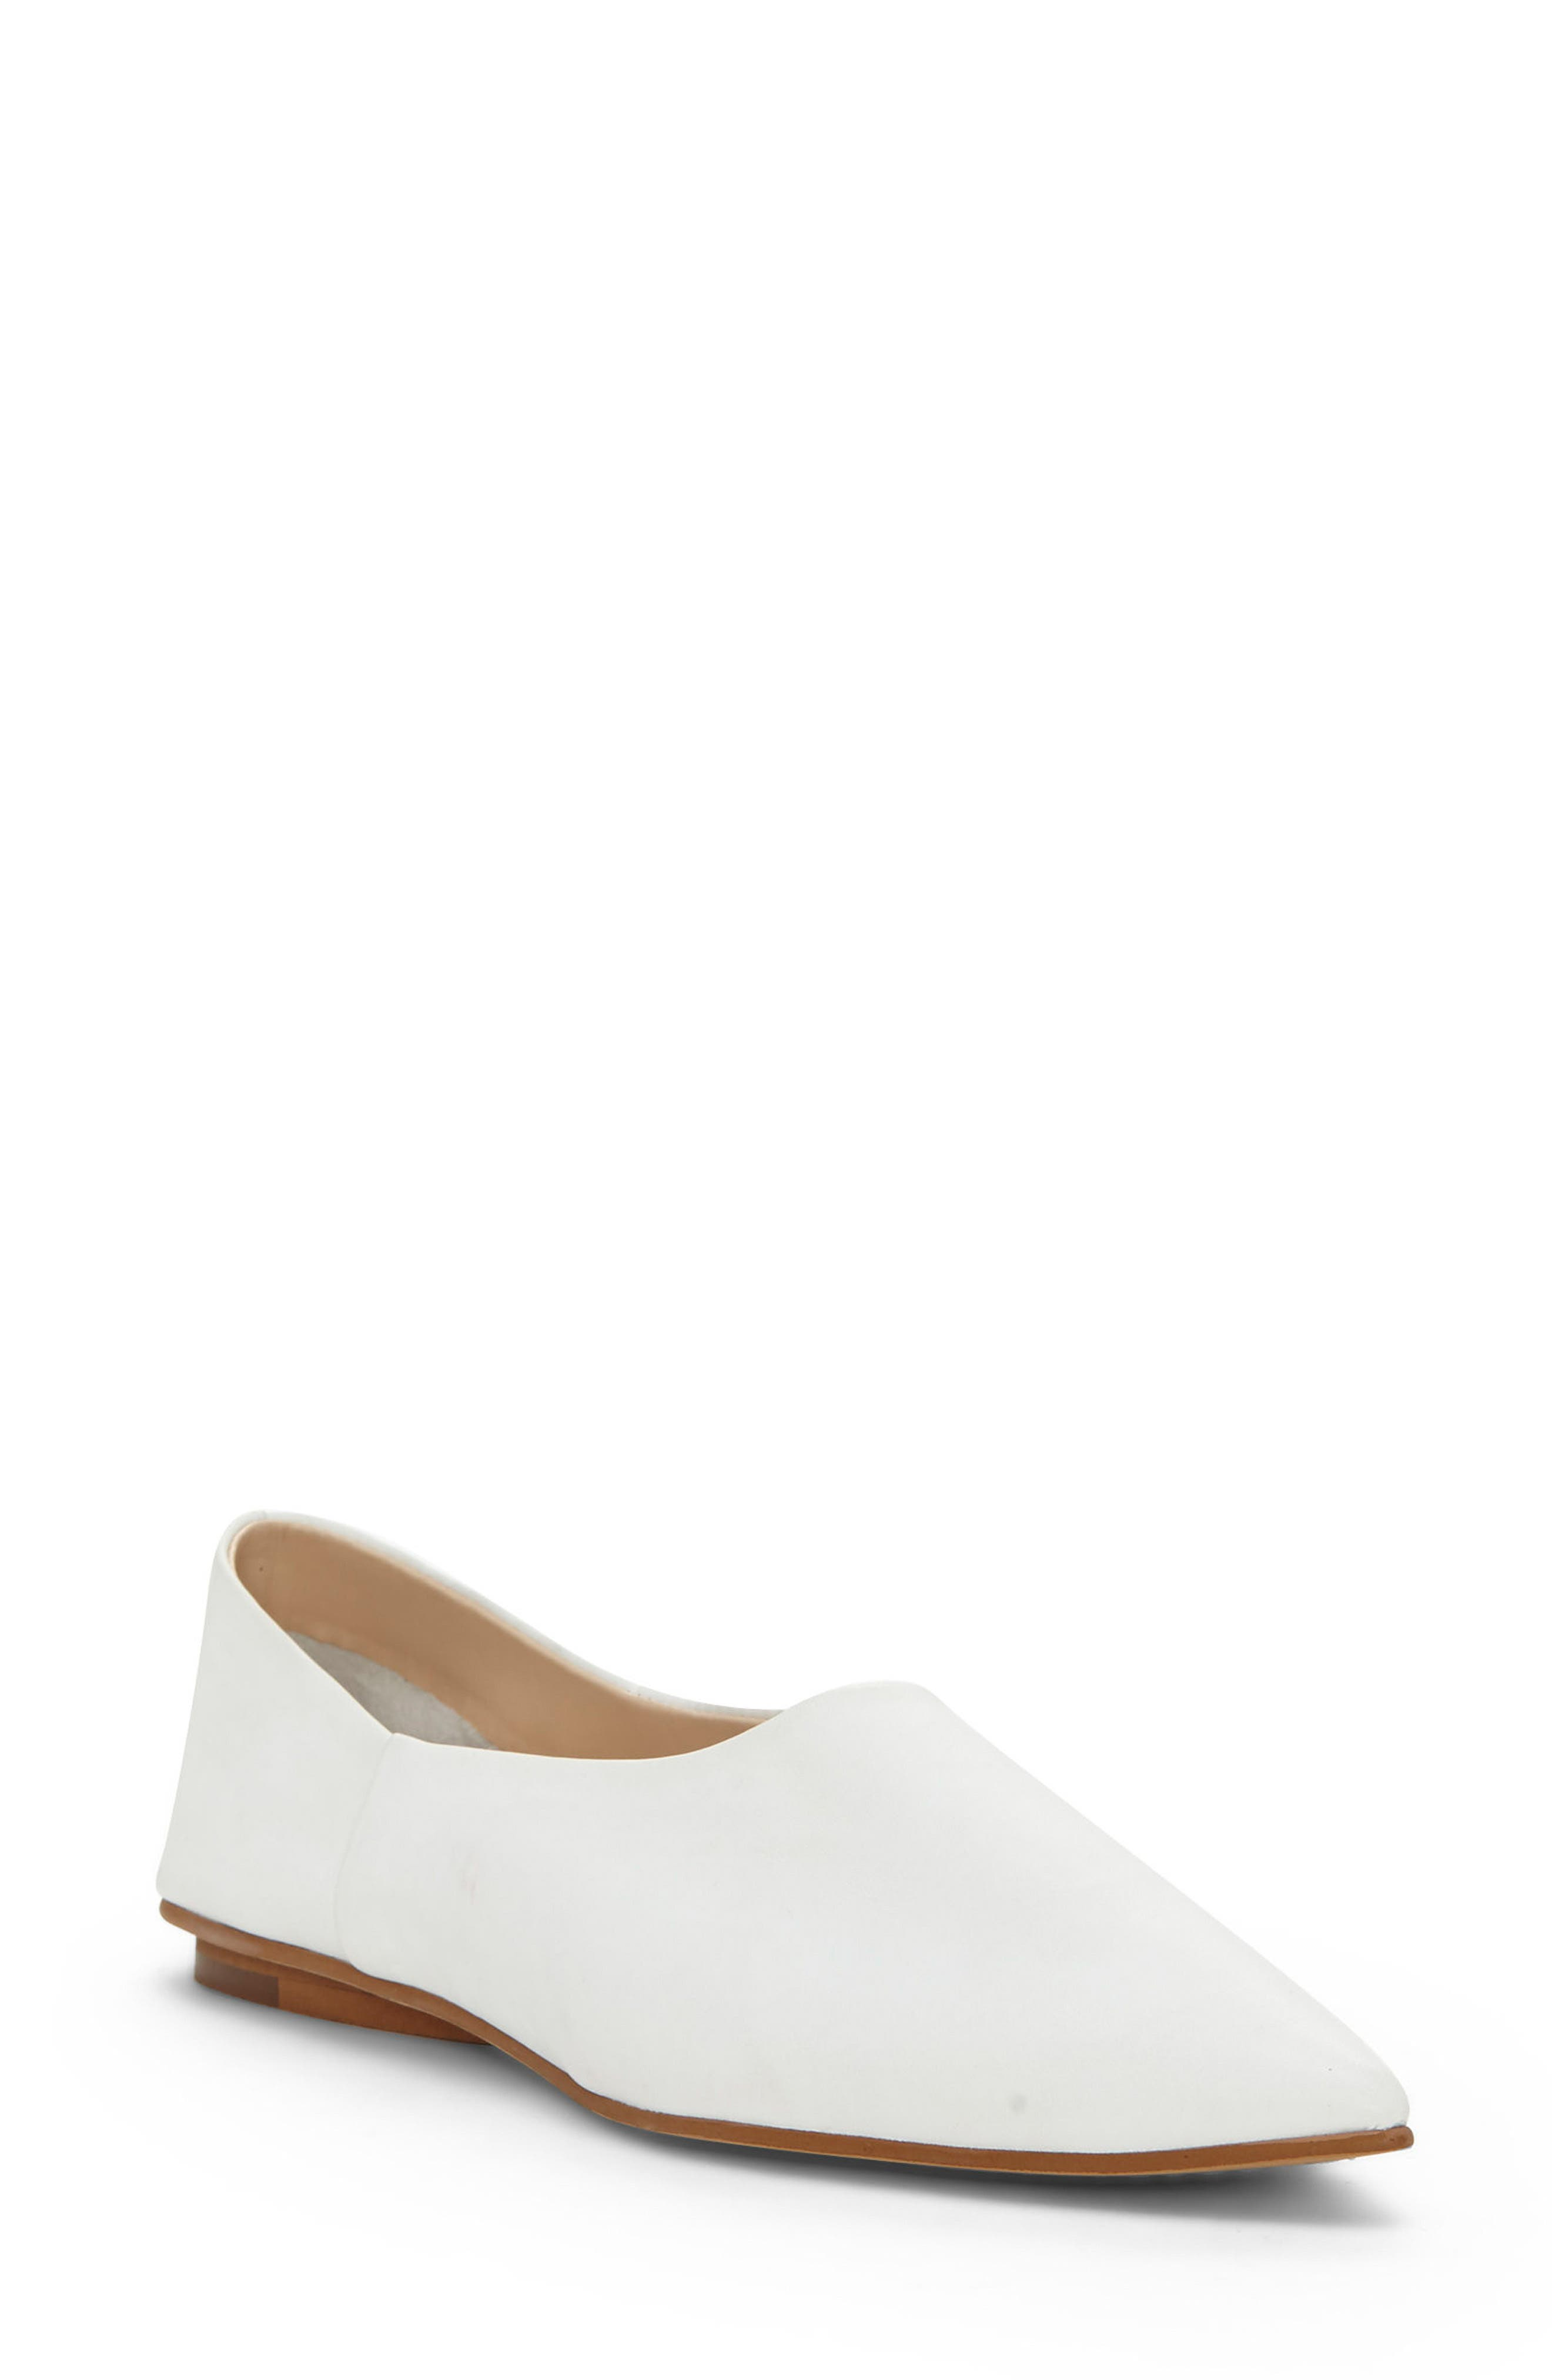 Stanta Pointy Toe Flat,                             Main thumbnail 1, color,                             Pure White Leather